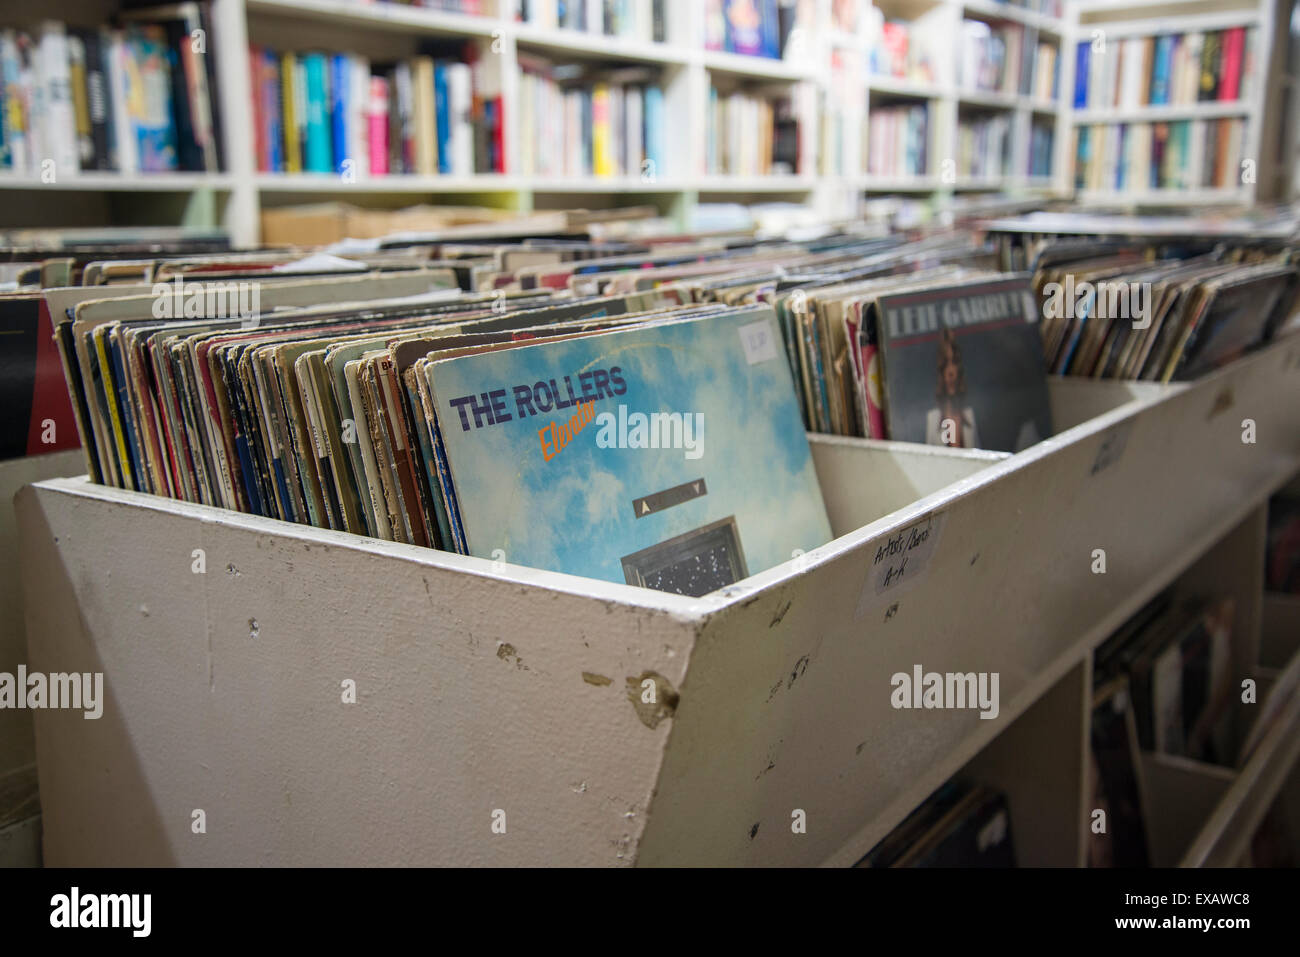 Goulds secondhand bookshop, vinyl records, King Street, Newtown, Sydney, Australia - Stock Image